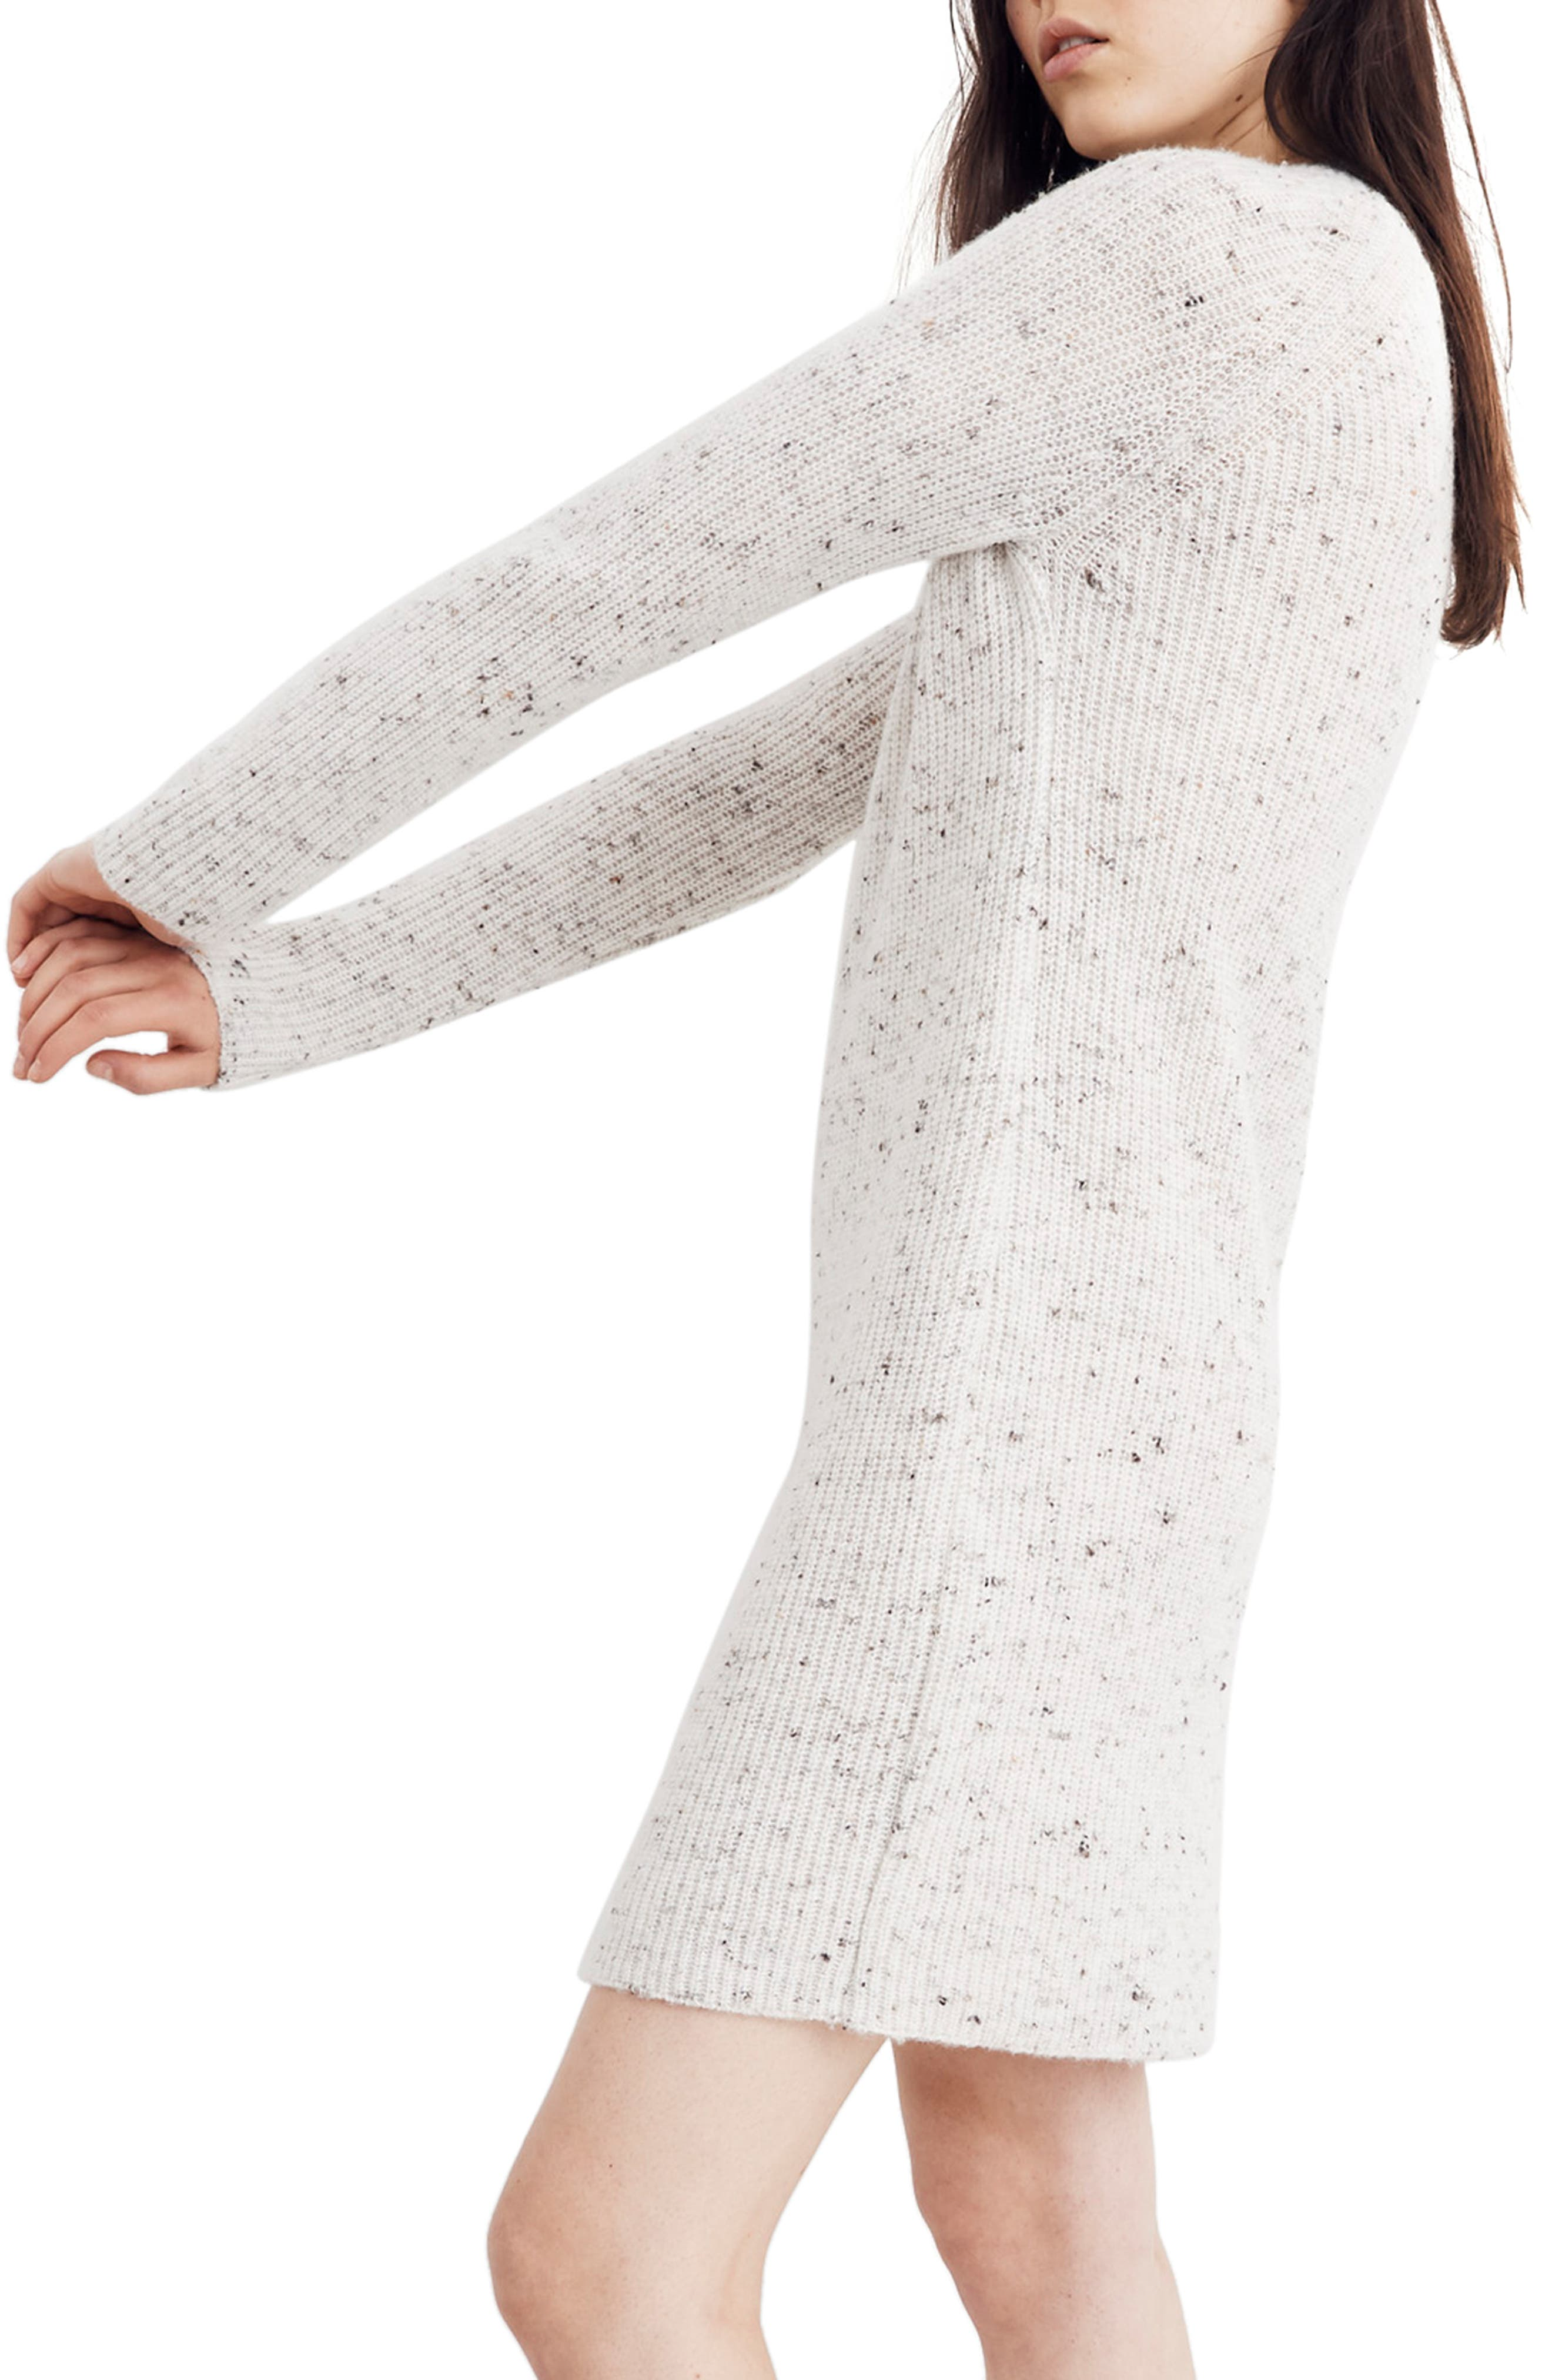 Northfield Donegal Mock Neck Sweater Dress,                             Alternate thumbnail 4, color,                             DONEGAL STORM